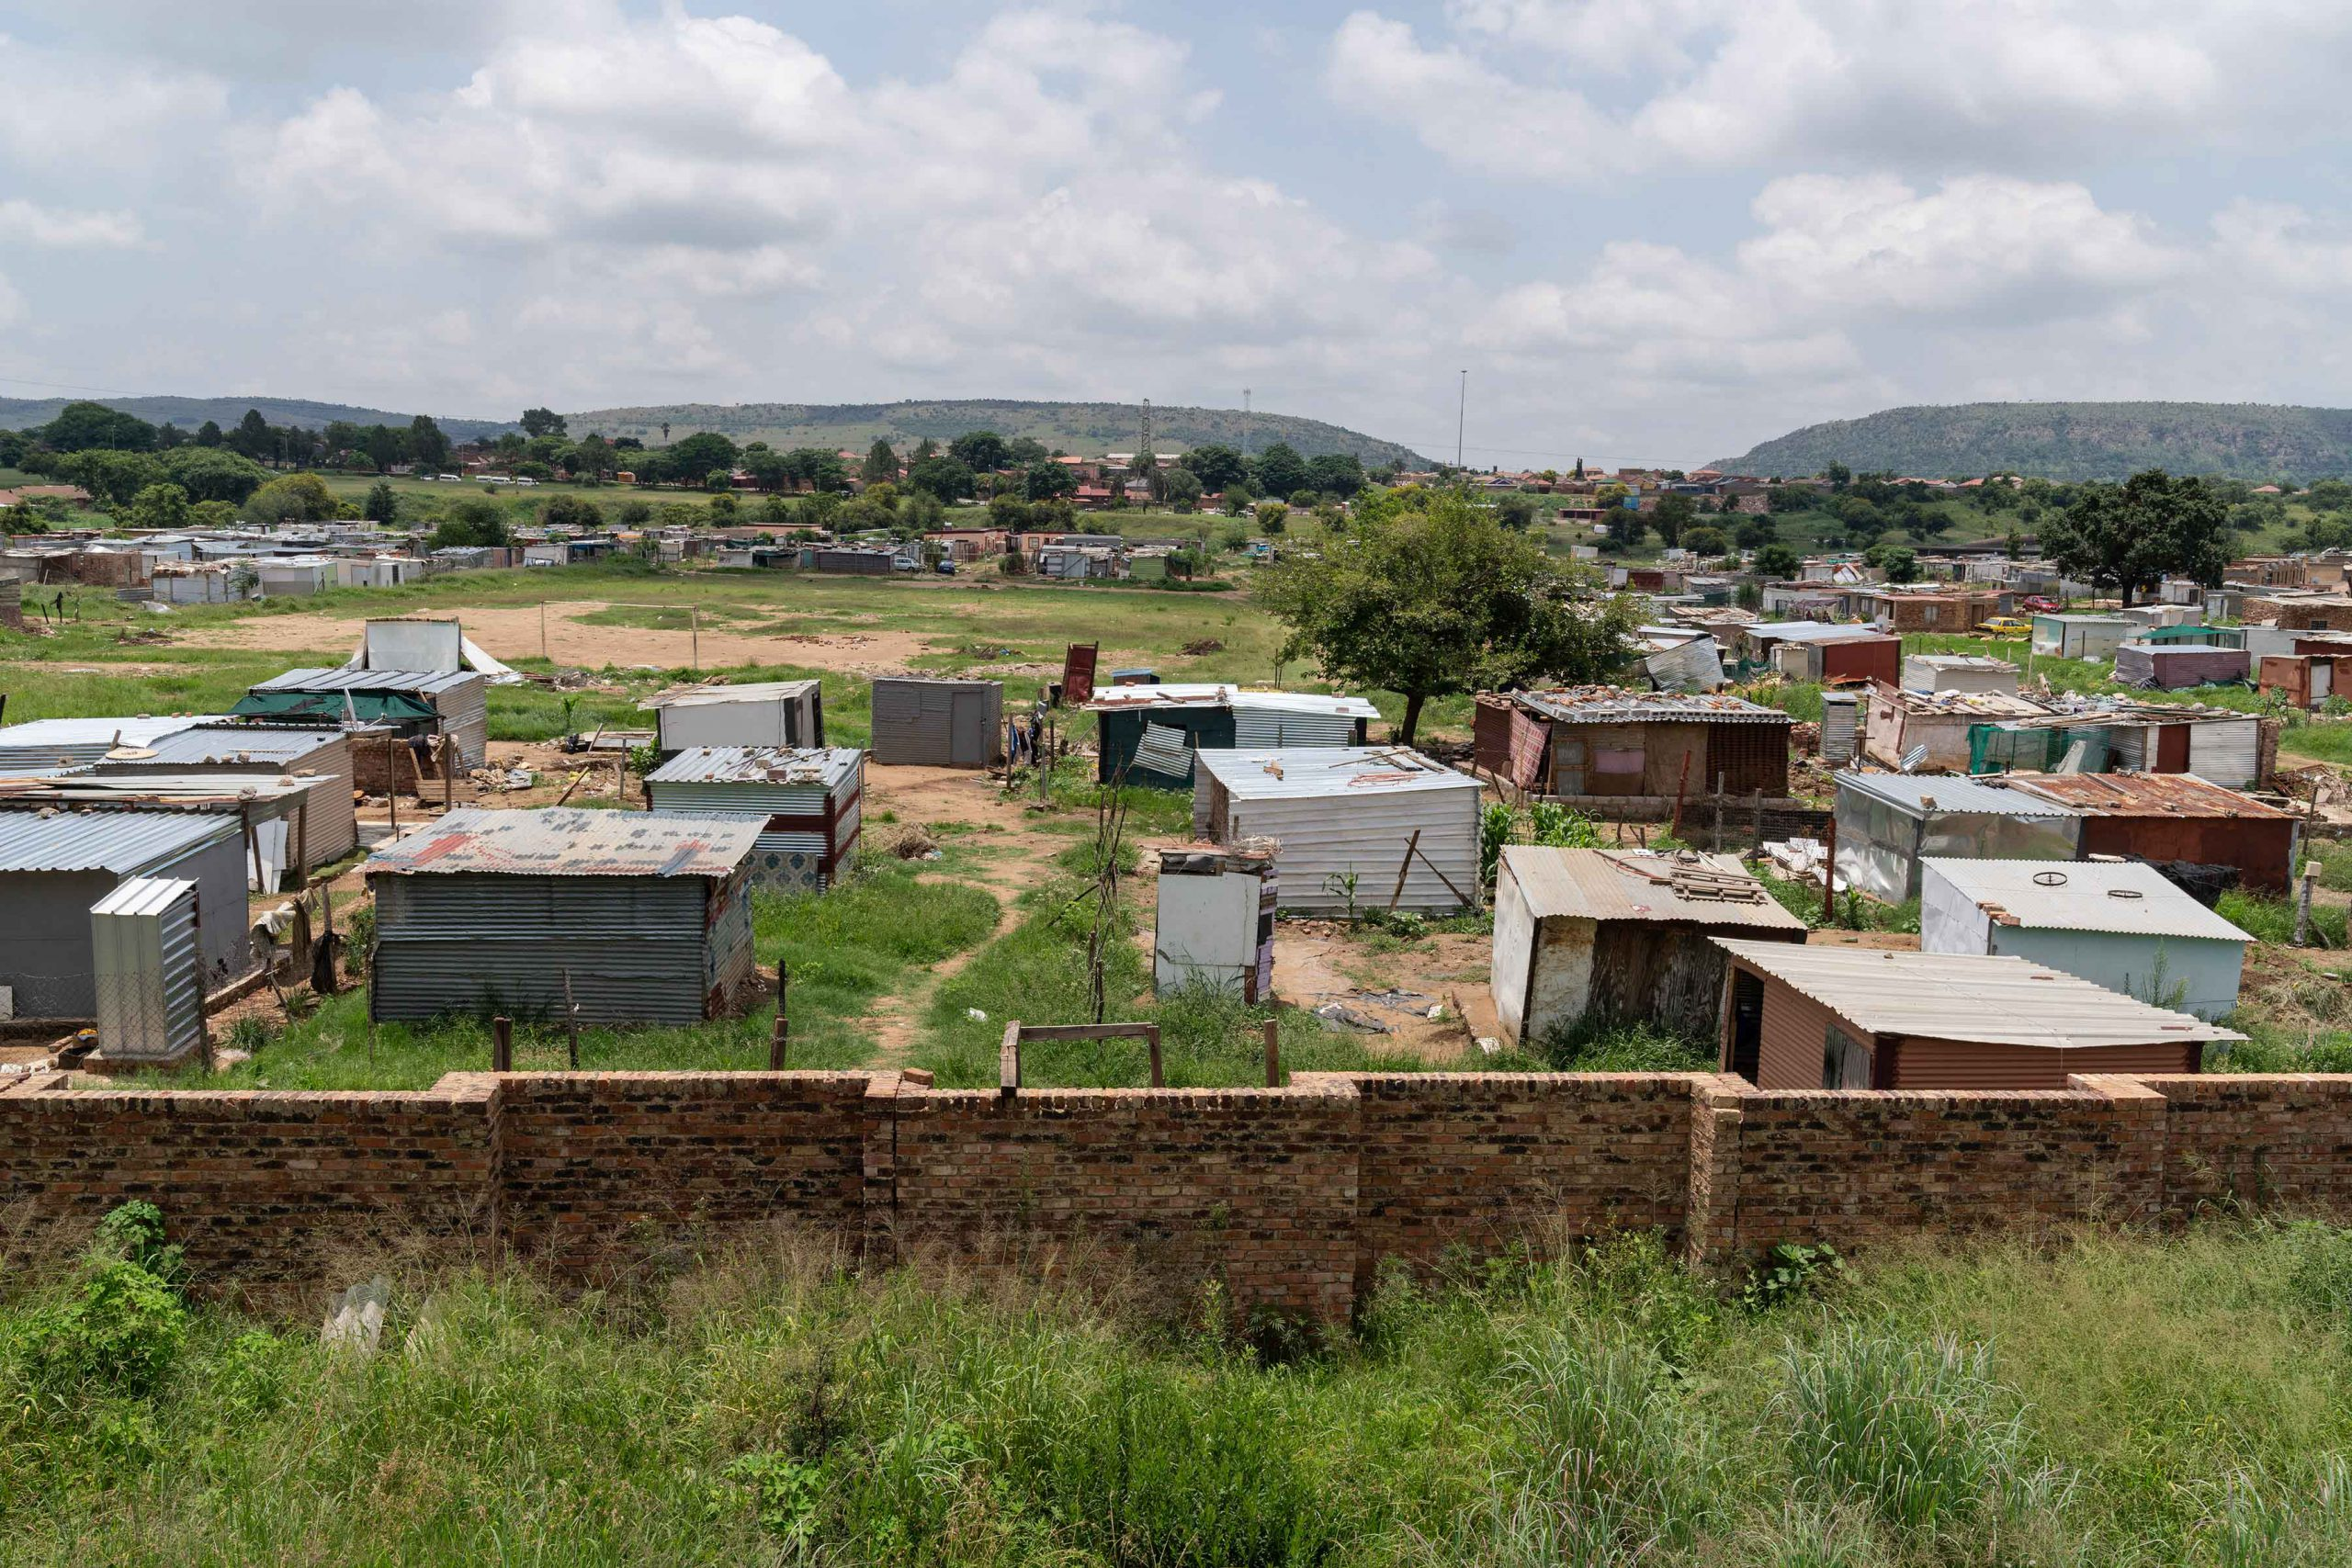 21 January 2020: A panorama of the Seven Seven shack settlement several weeks after the devastating floods there in December 2019.